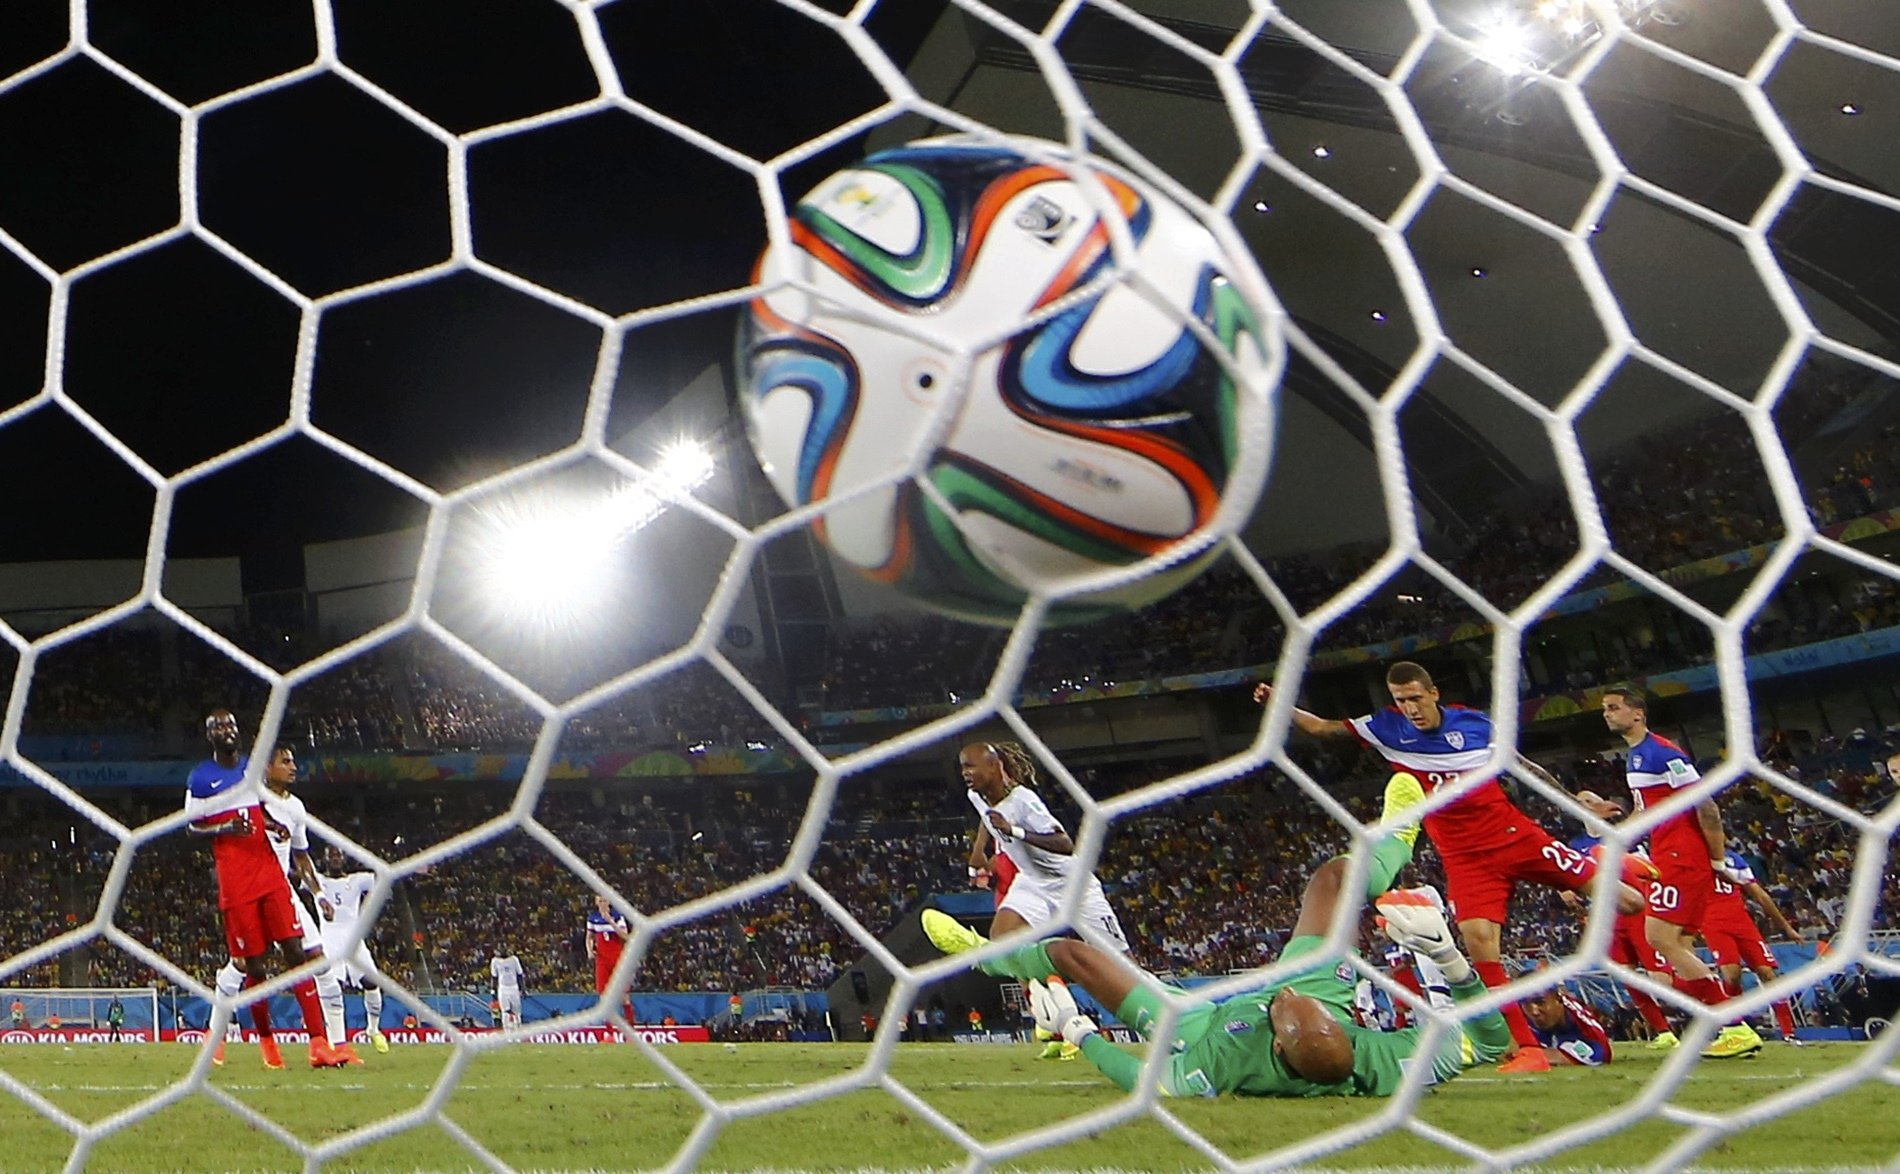 Ghana's Andre Ayew scores a goal during their 2014 World Cup Group G soccer match at the Dunas arena in Natal, Brazil on June 16, 2014.